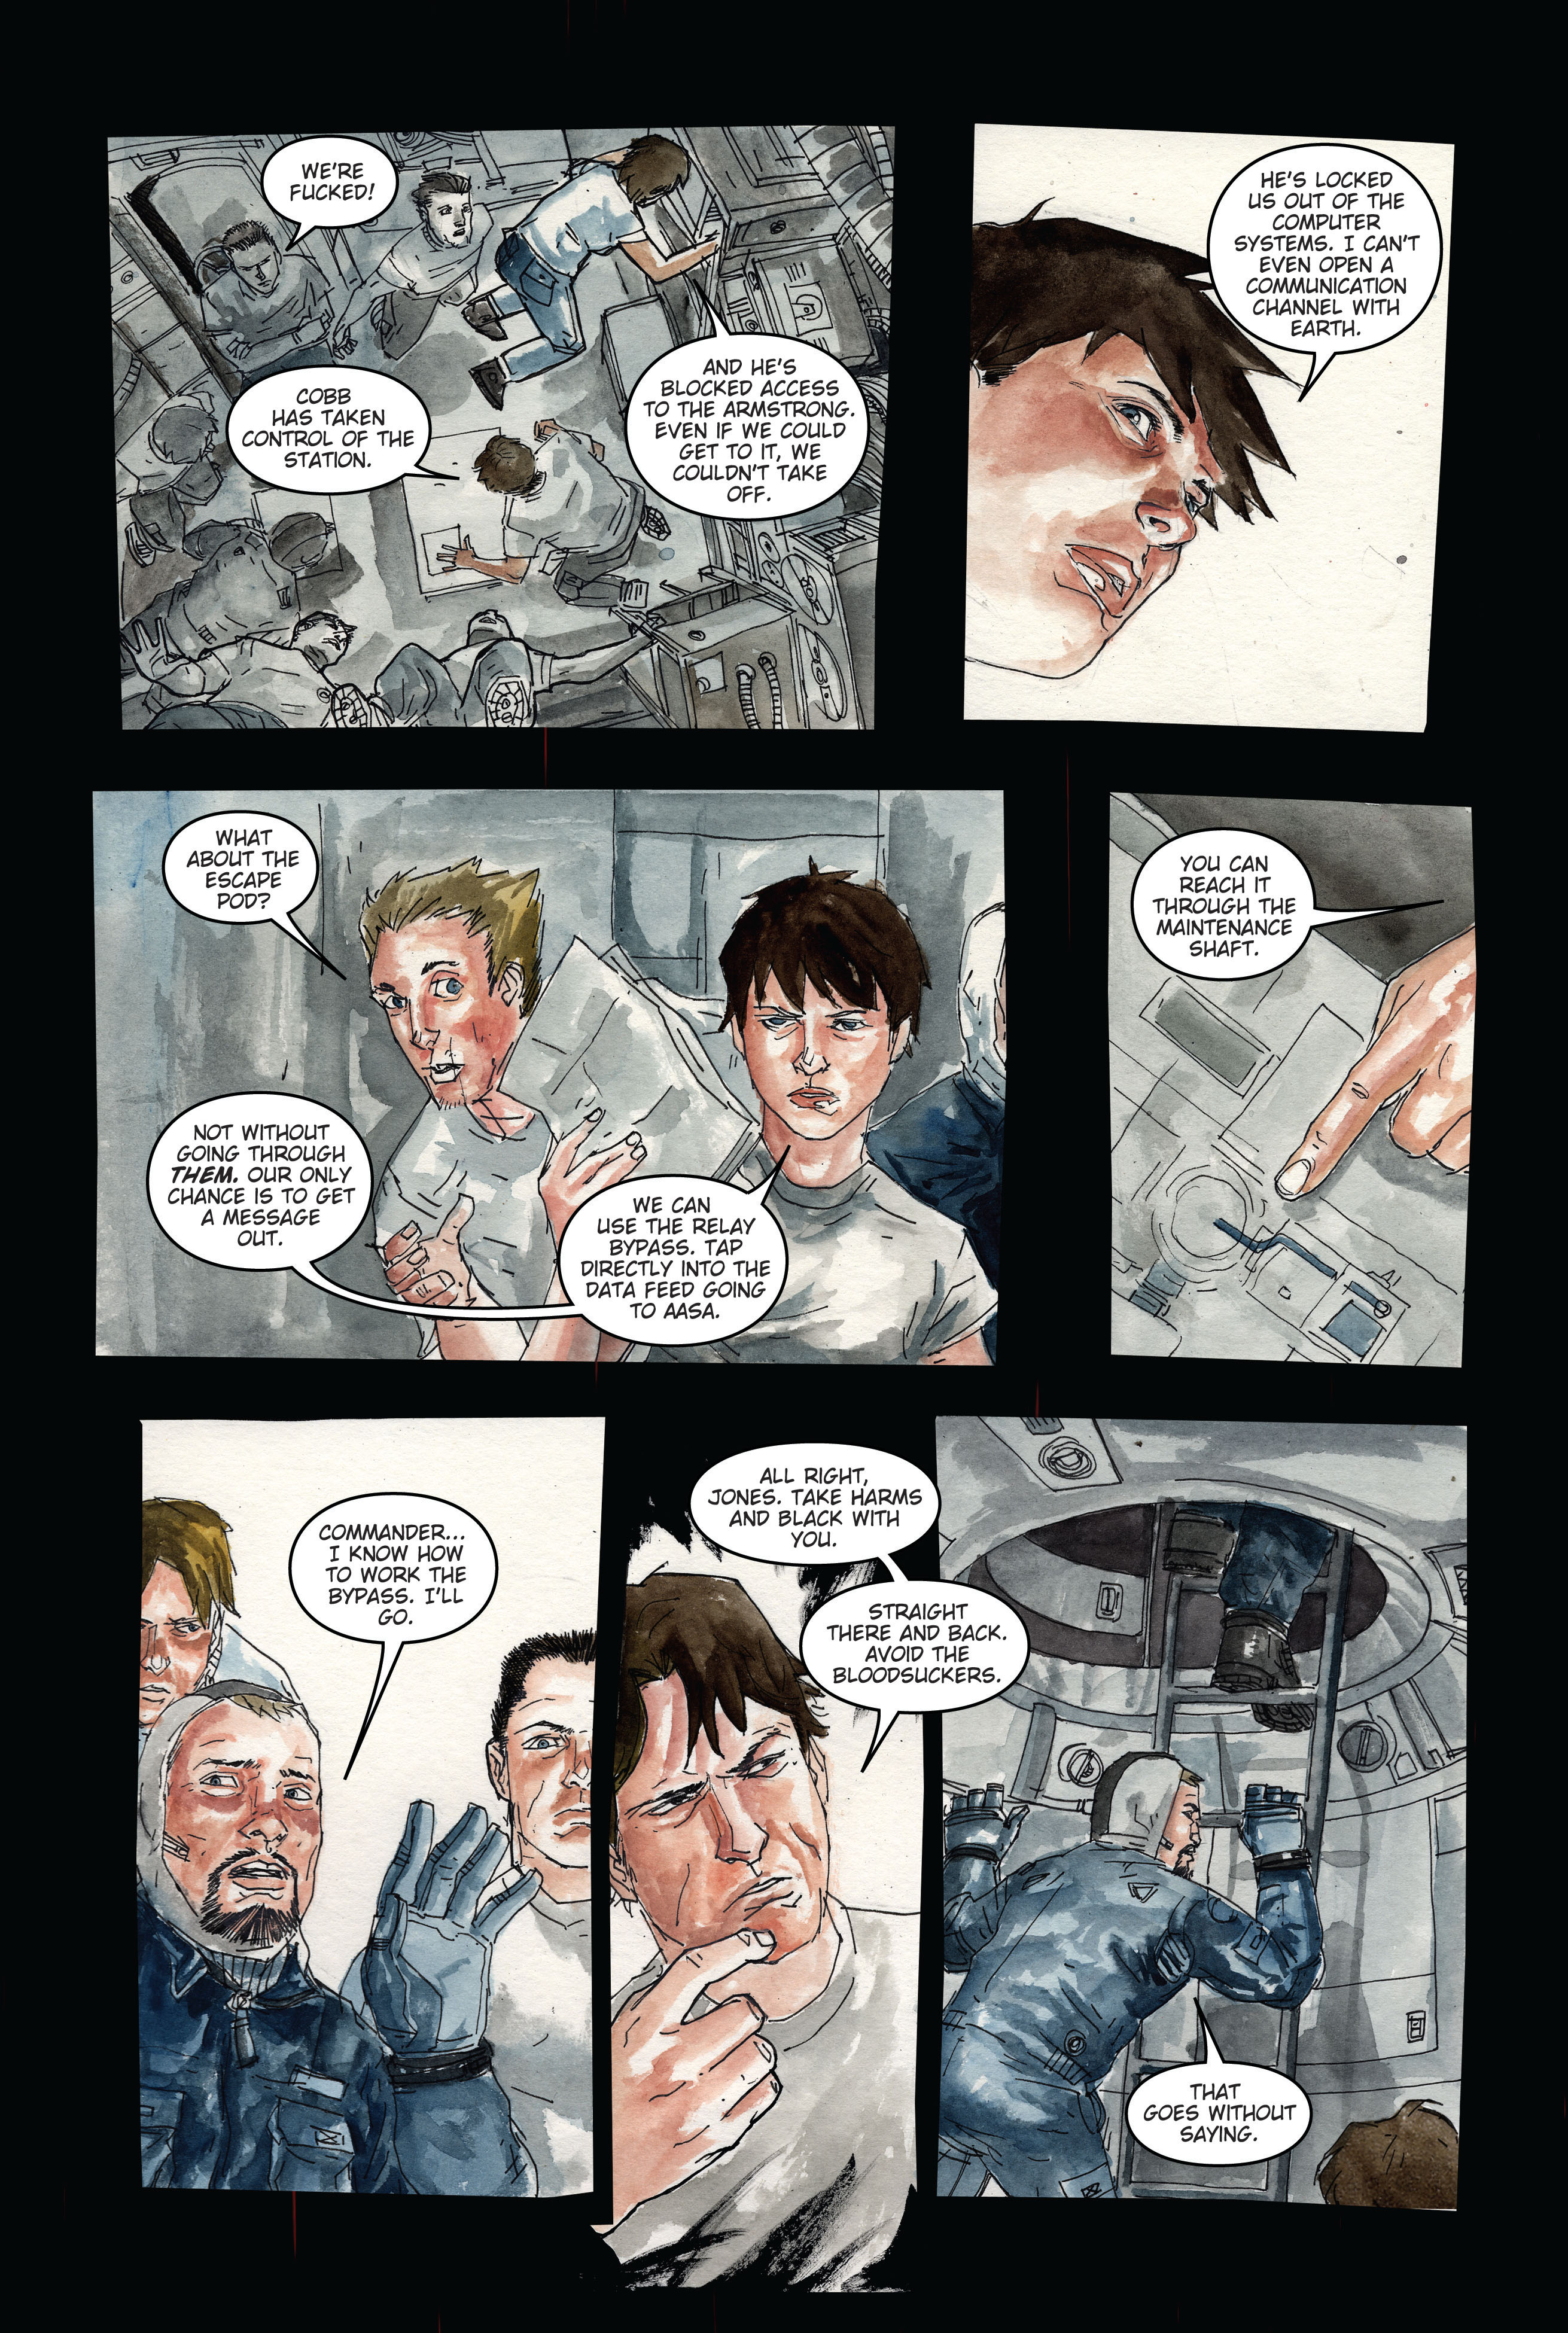 30 Days of Night: Dead Space 3 Page 2